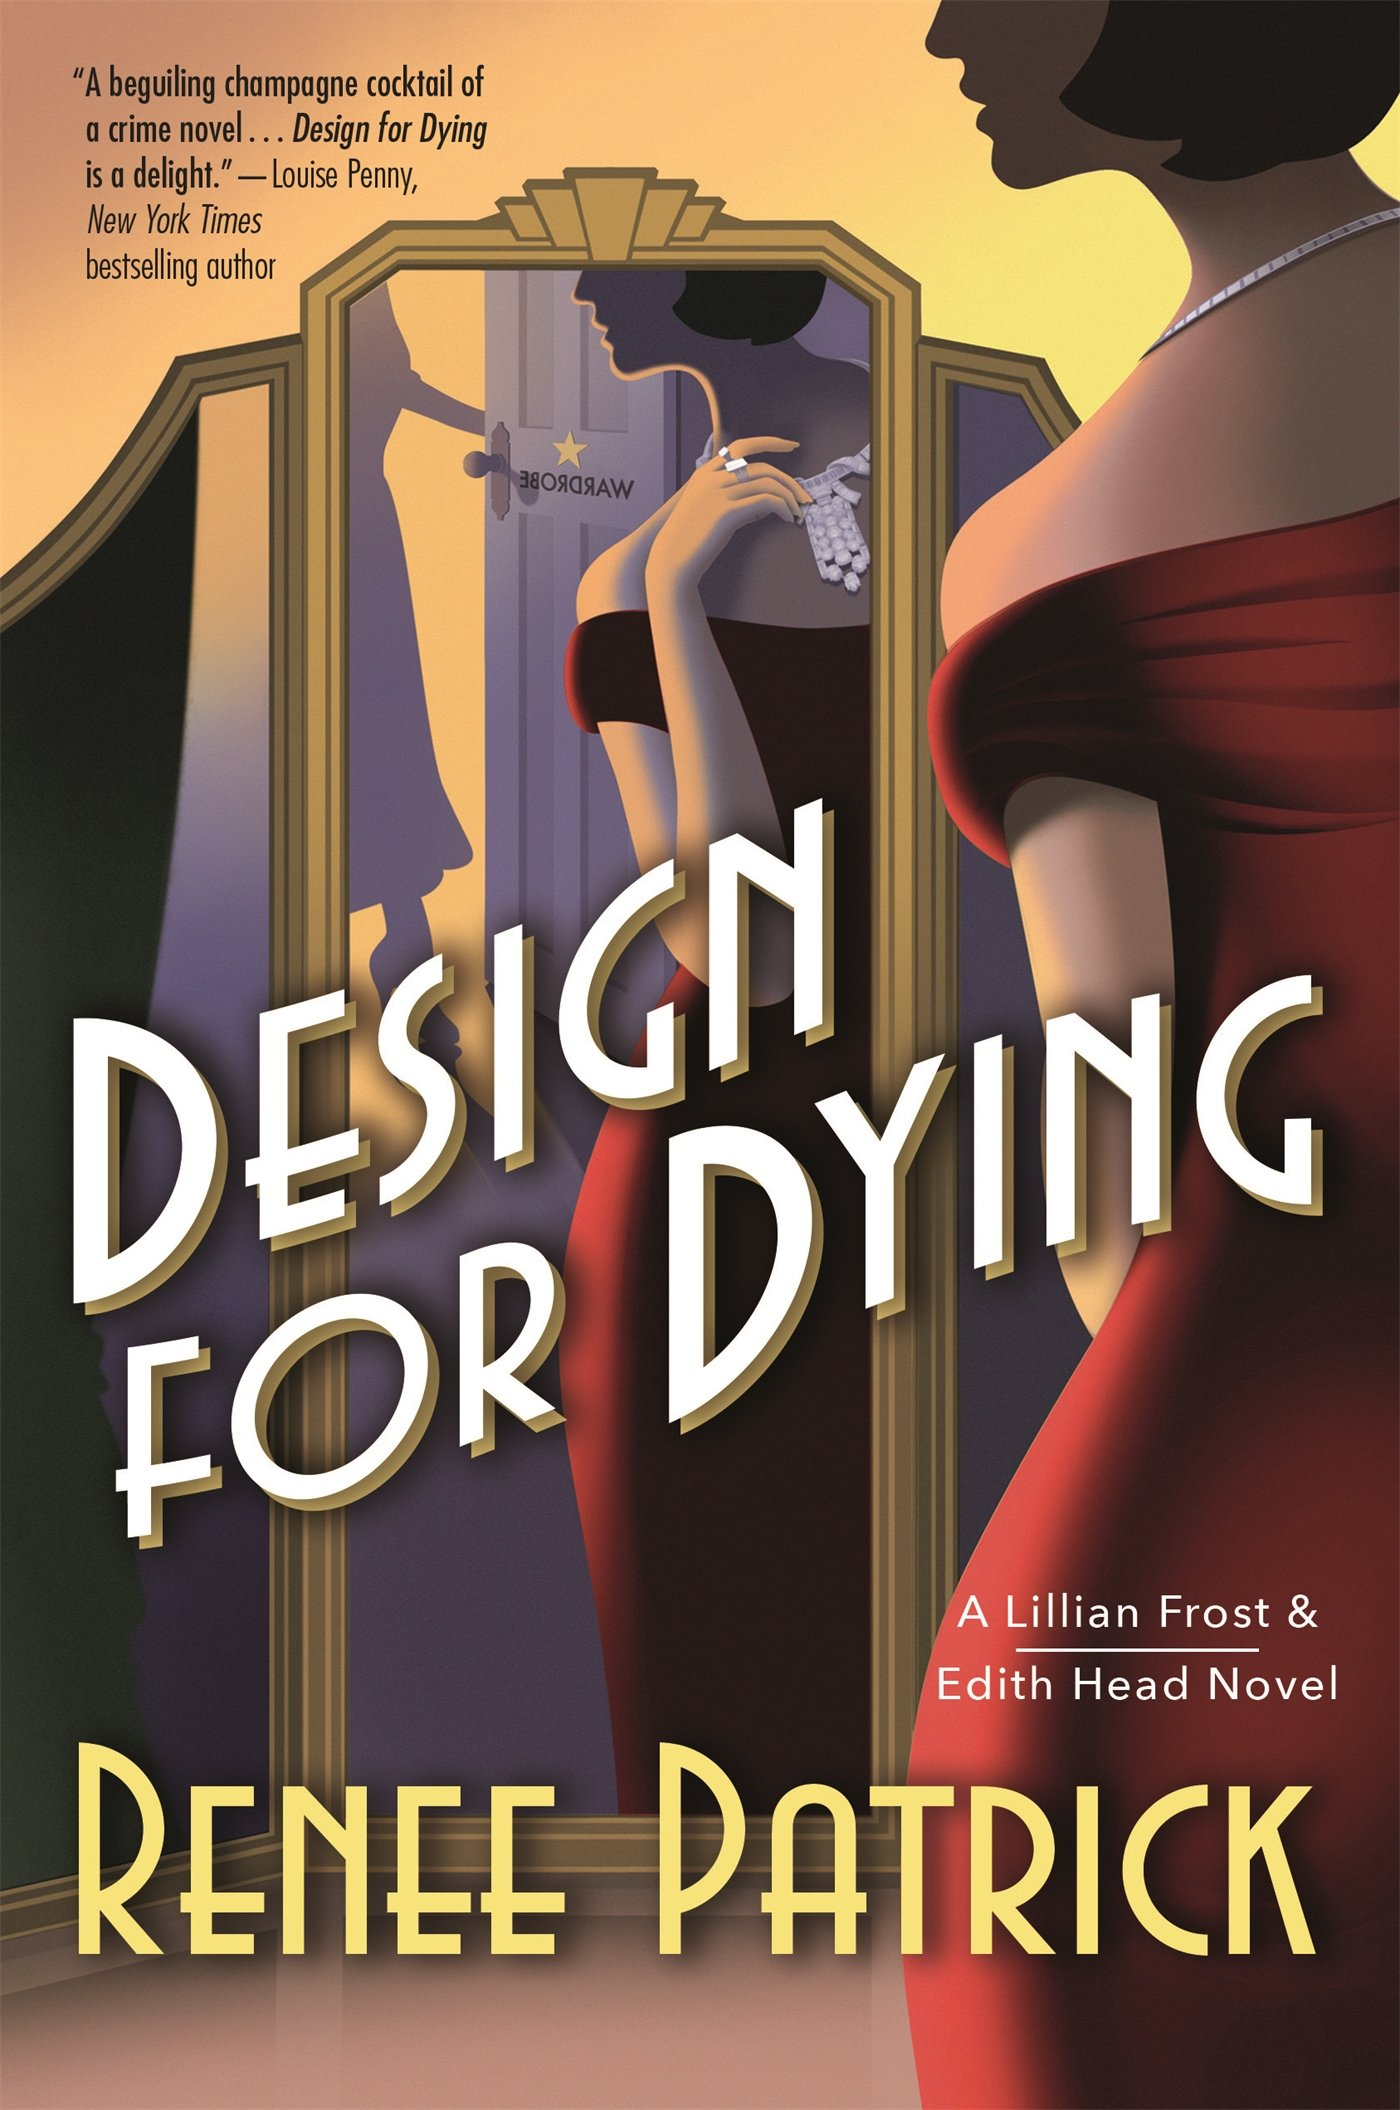 Design for Dying: A Lillian Frost & Edith Head Novel: Renee Patrick ...